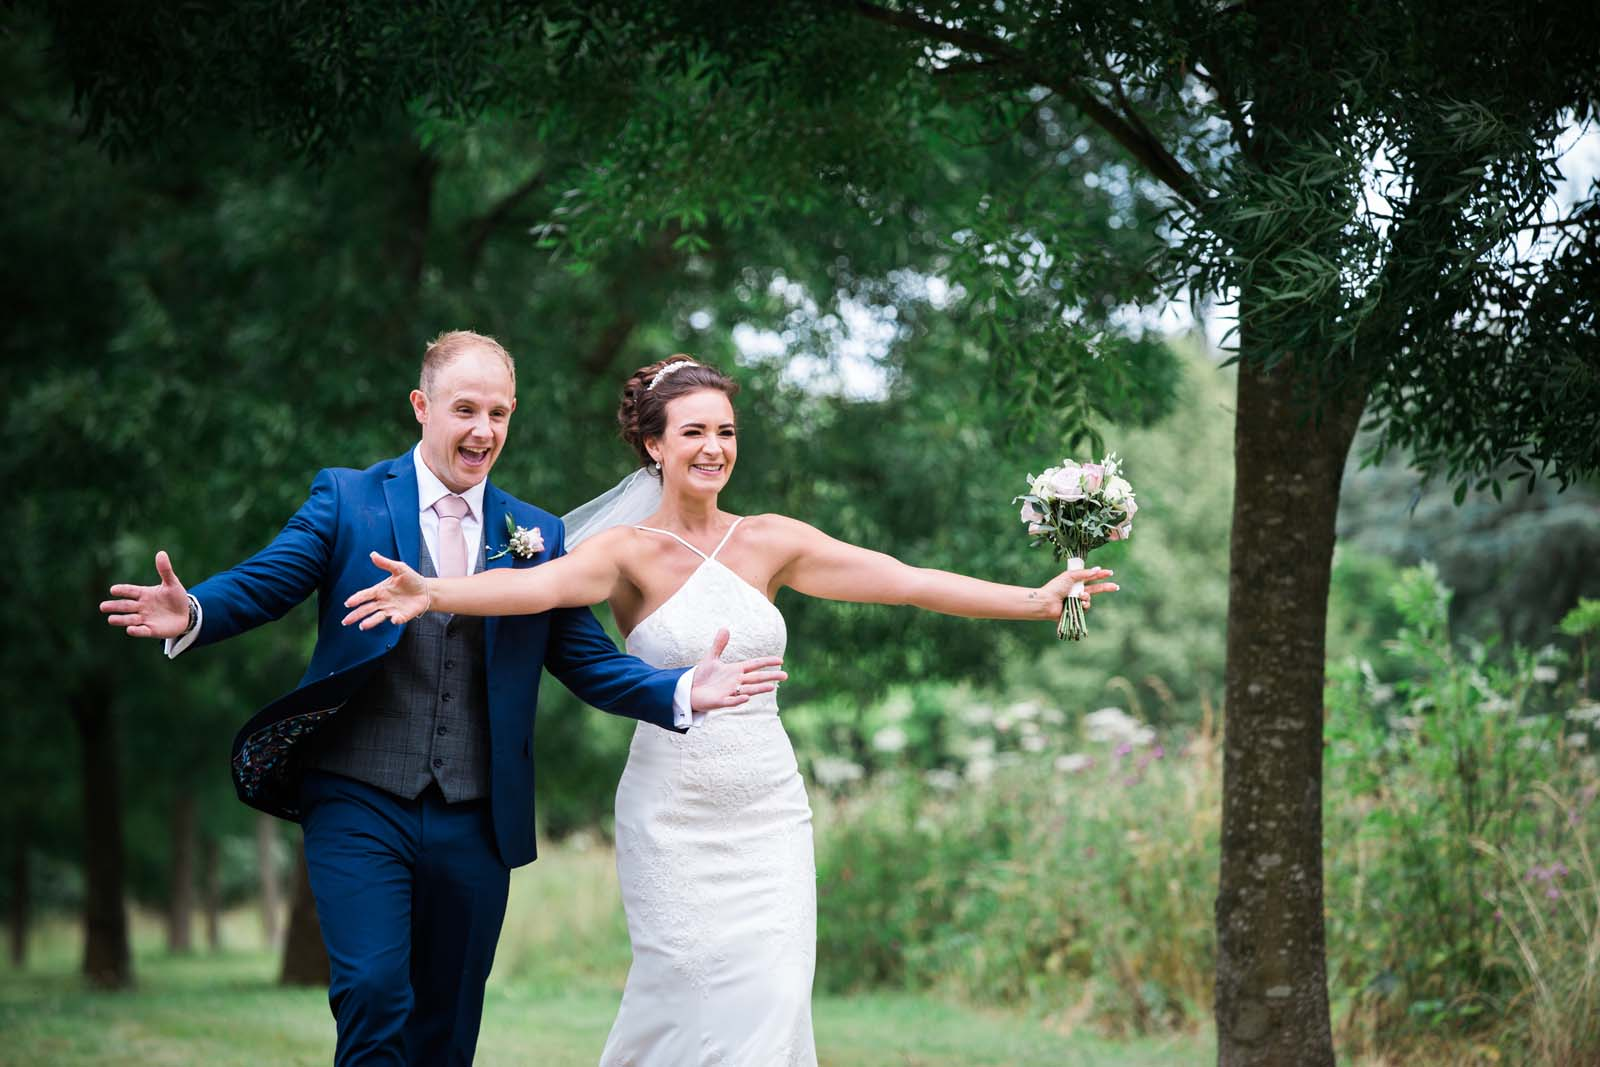 Wedding Phohography by Heni Fourie - open arms